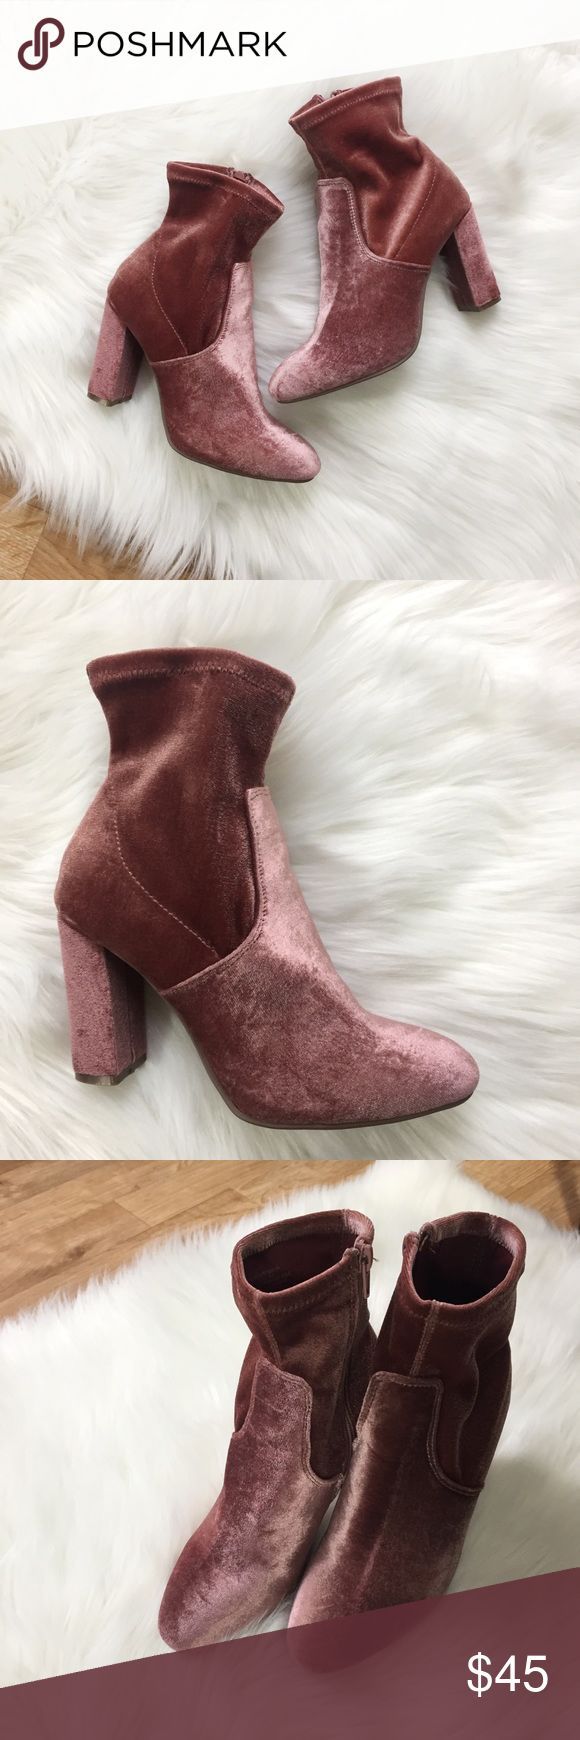 Madden Girl Pink Suede Ankle Boots Madden Girl Pink Suede Ankle Boots. Great condition!   Small dark mark on the inside of the right shoe. (See picture)   Size 5.5. I'm a 6 & they fit me!   Happy to answer any questions!  Thanks for looking!   OFFERS are welcome!  ** 10% off Bundles of 3+ ** Ships within 24 hours!  Smoke free home. No trades or Paypal. Madden Girl Shoes Heeled Boots